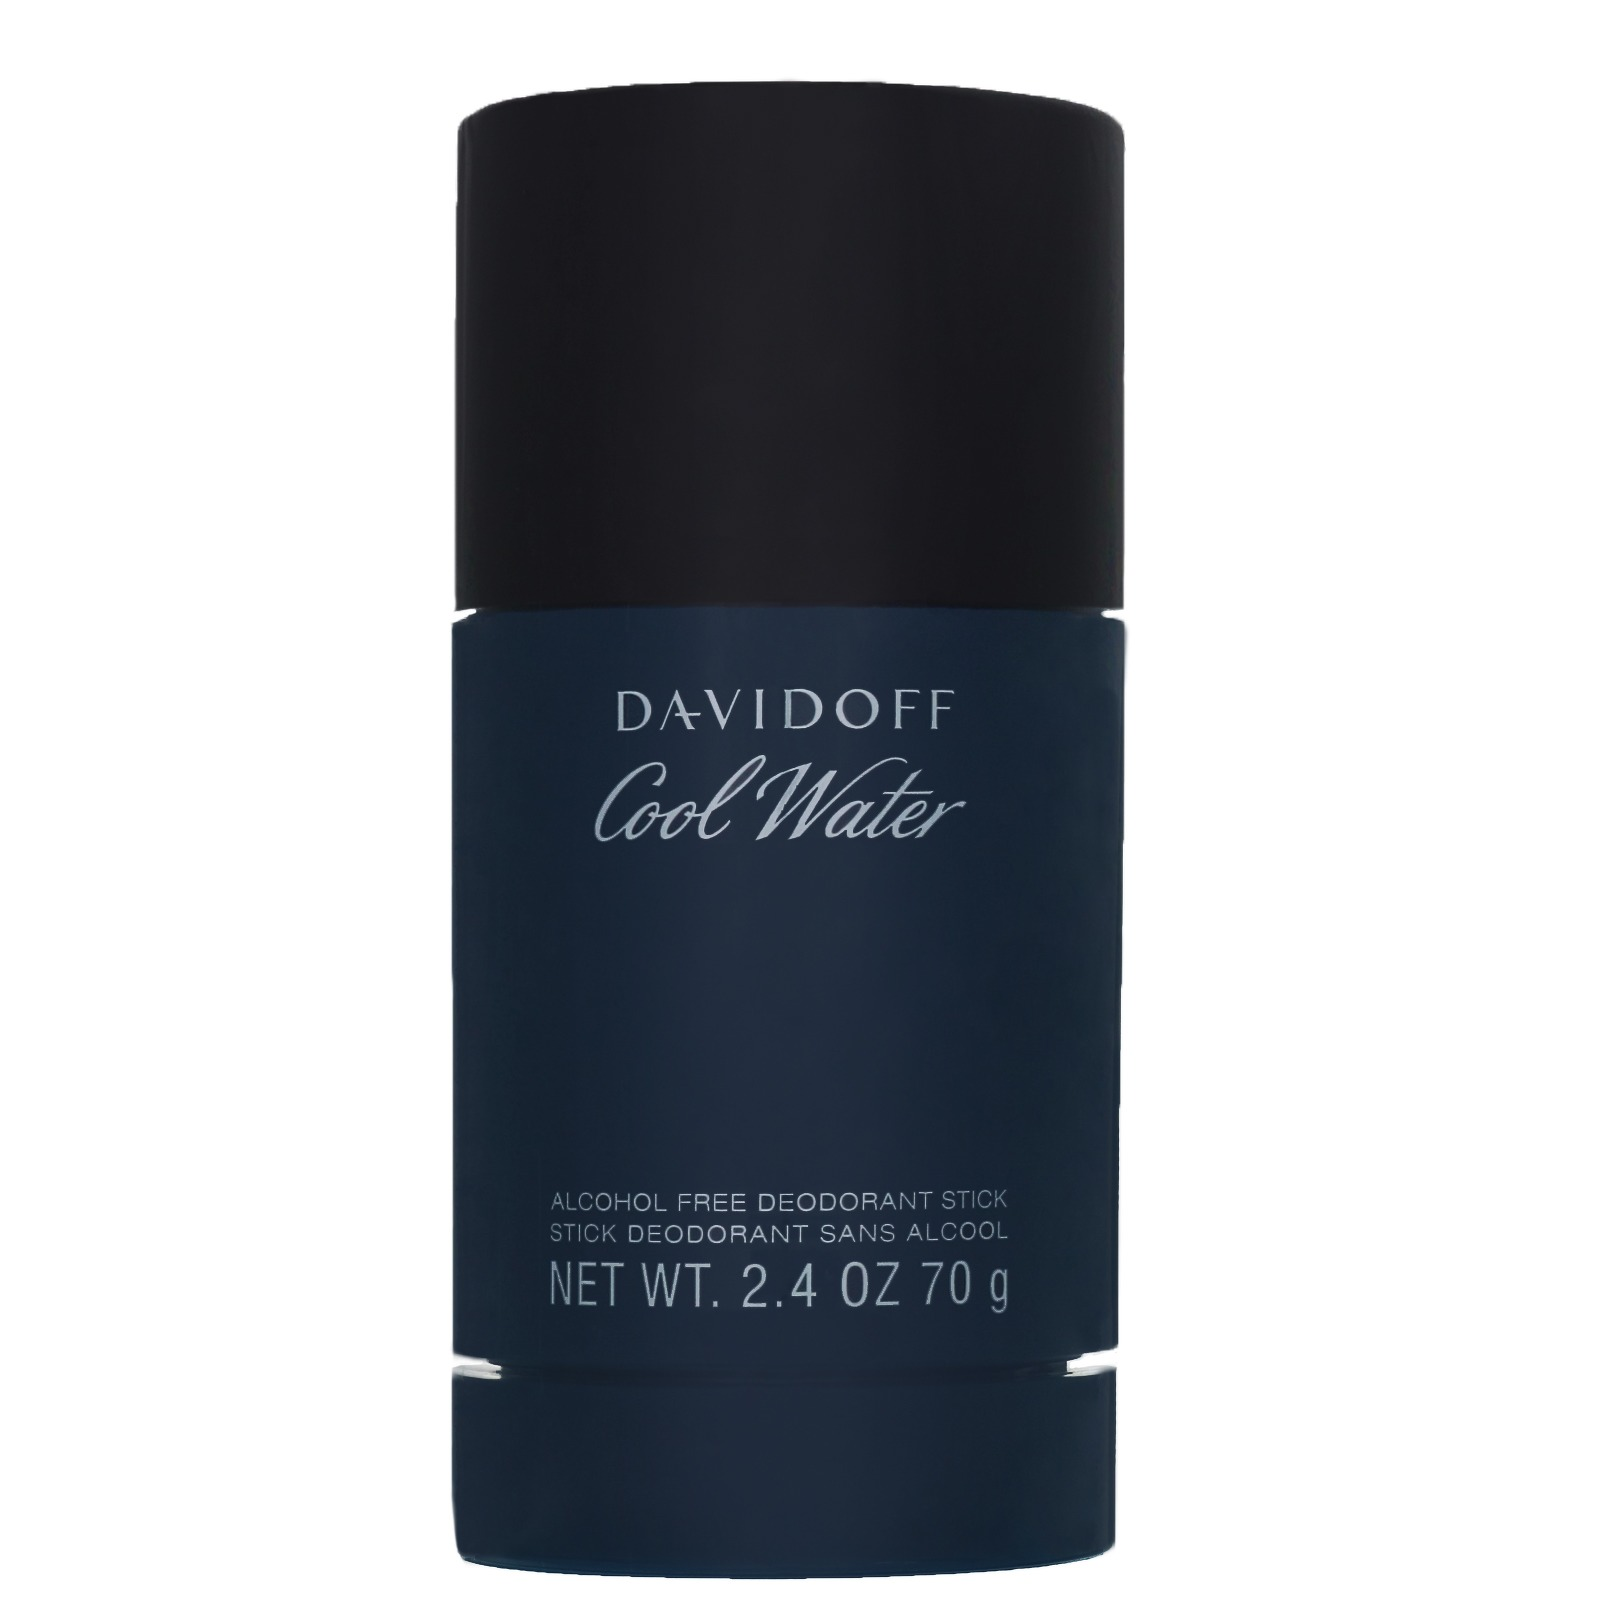 Davidoff Cool Water Man Alcohol Free Deodorant Stick 70g